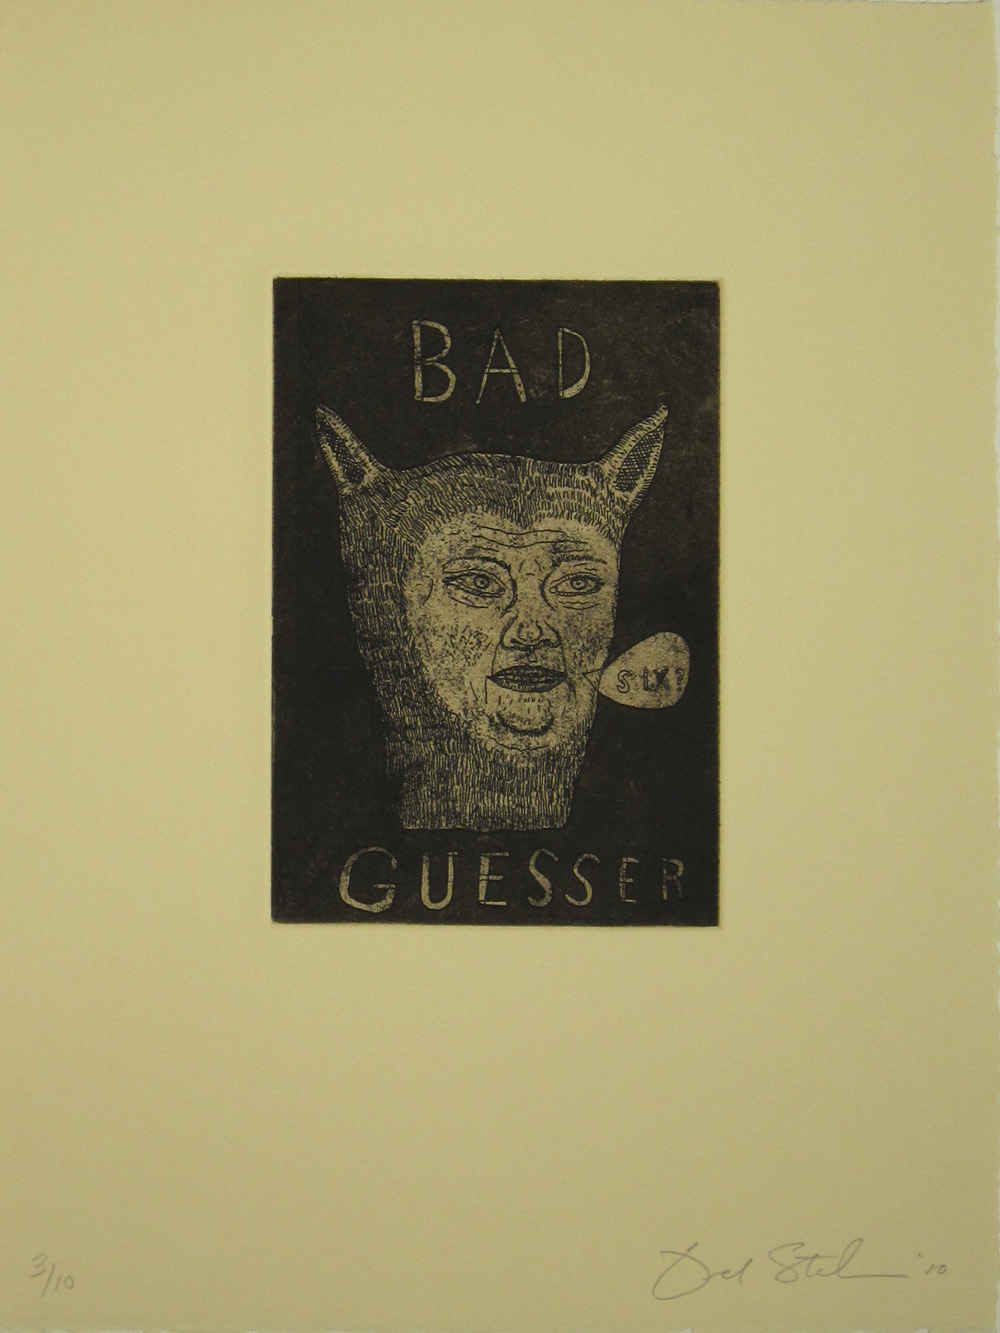 BAD GUESSER, Ed. 3/10, Etching / Aquatint, 6 3/4 x 4 3/4""